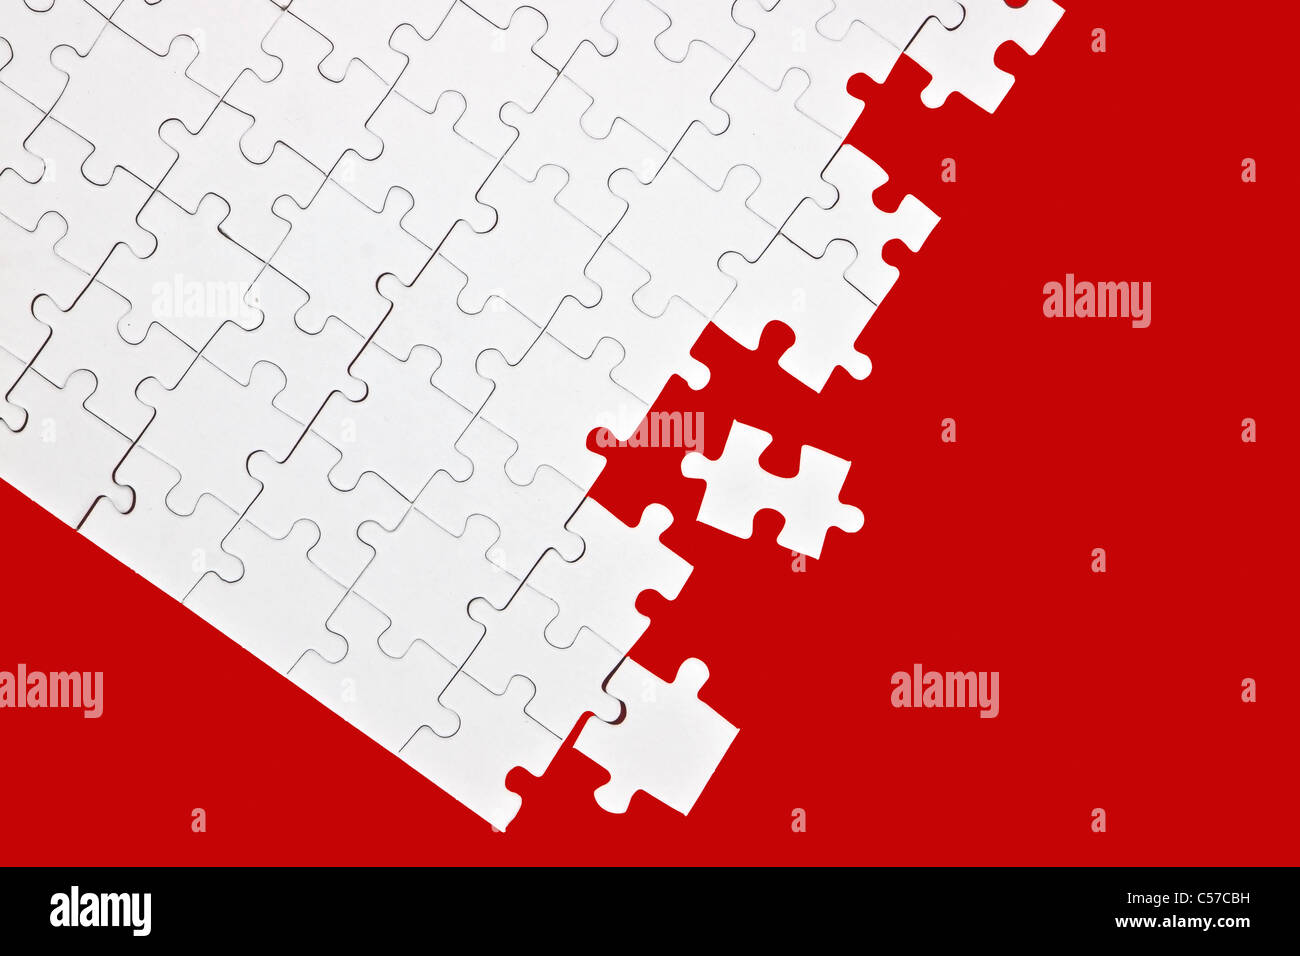 a puzzle with missing parts, which are connected - Stock Image